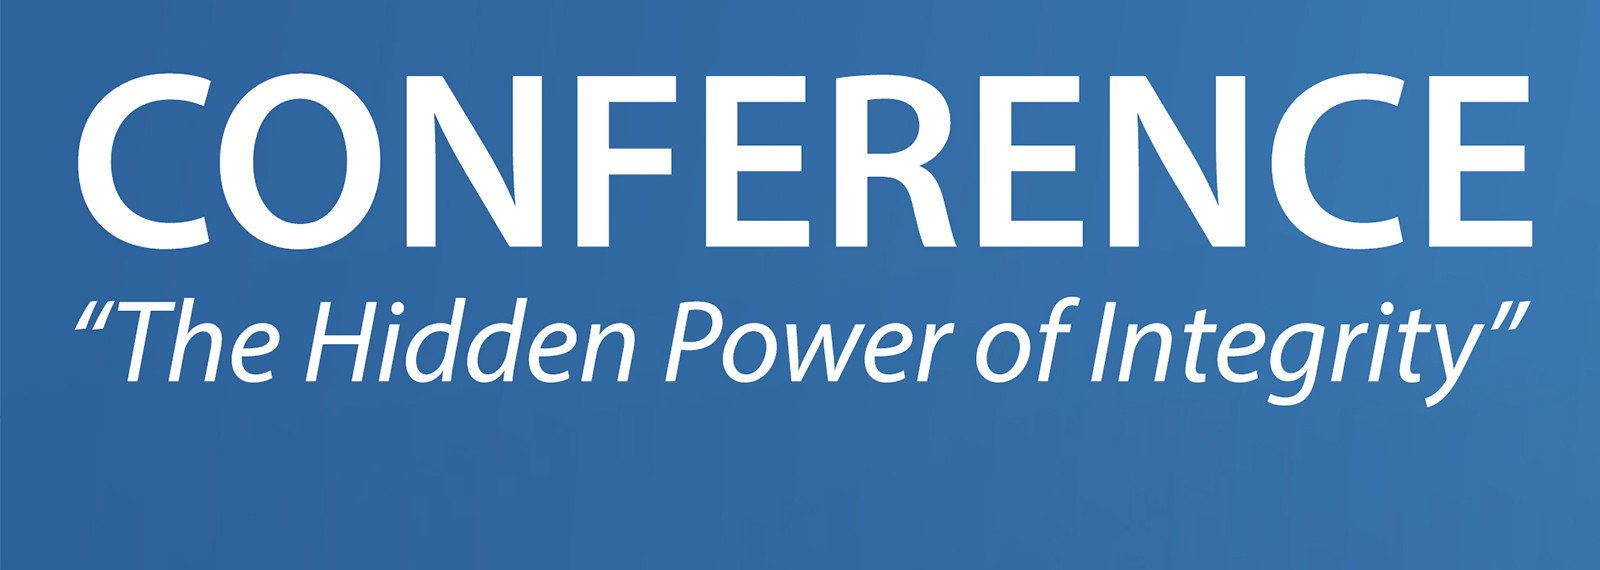 Conference The Hidden Power of Integrity